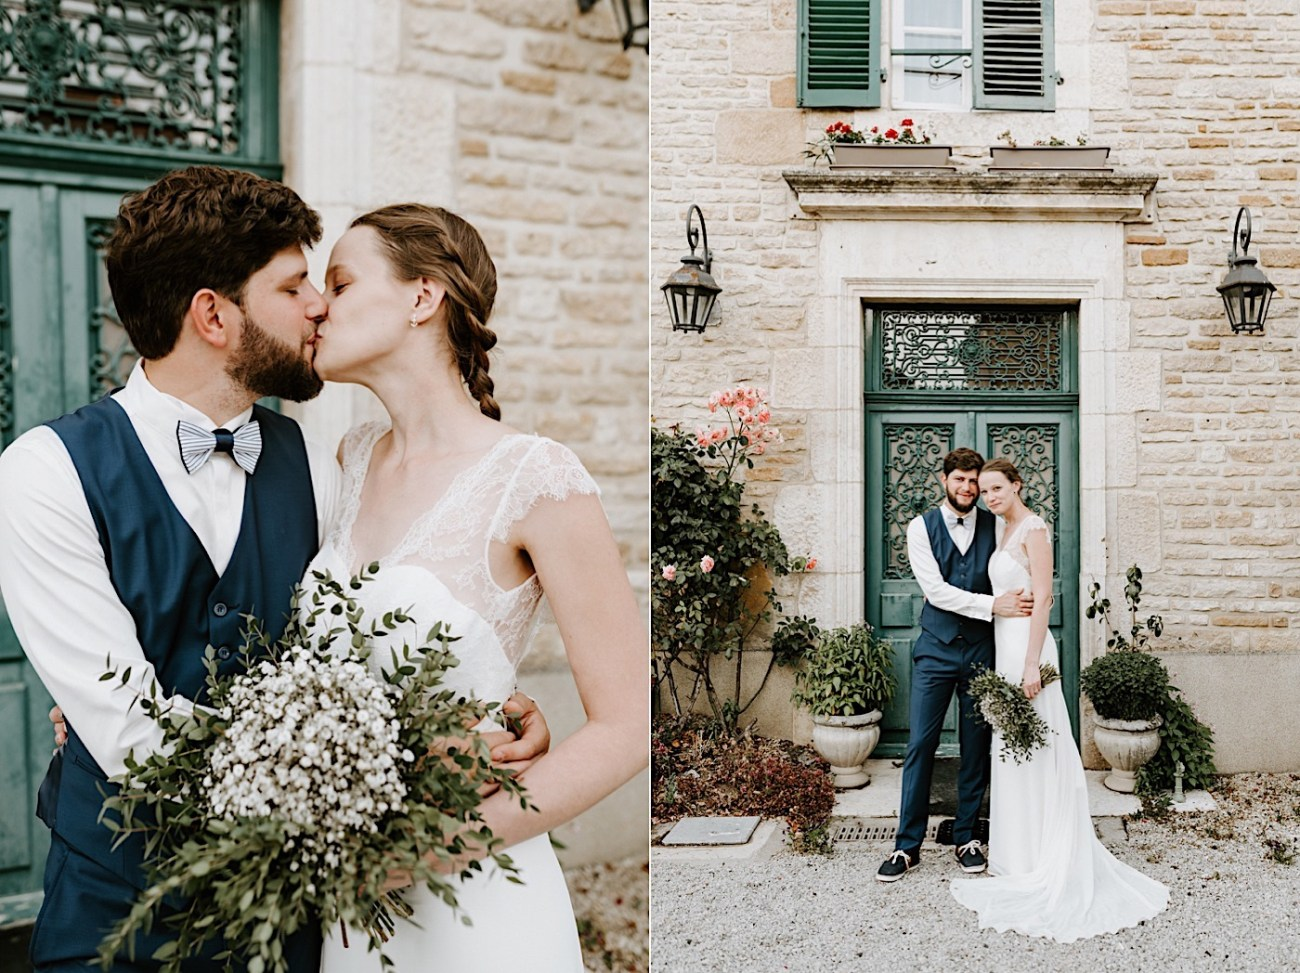 French Rural Wedding After Wedding Day Photos Paris Wedding Photographer 003